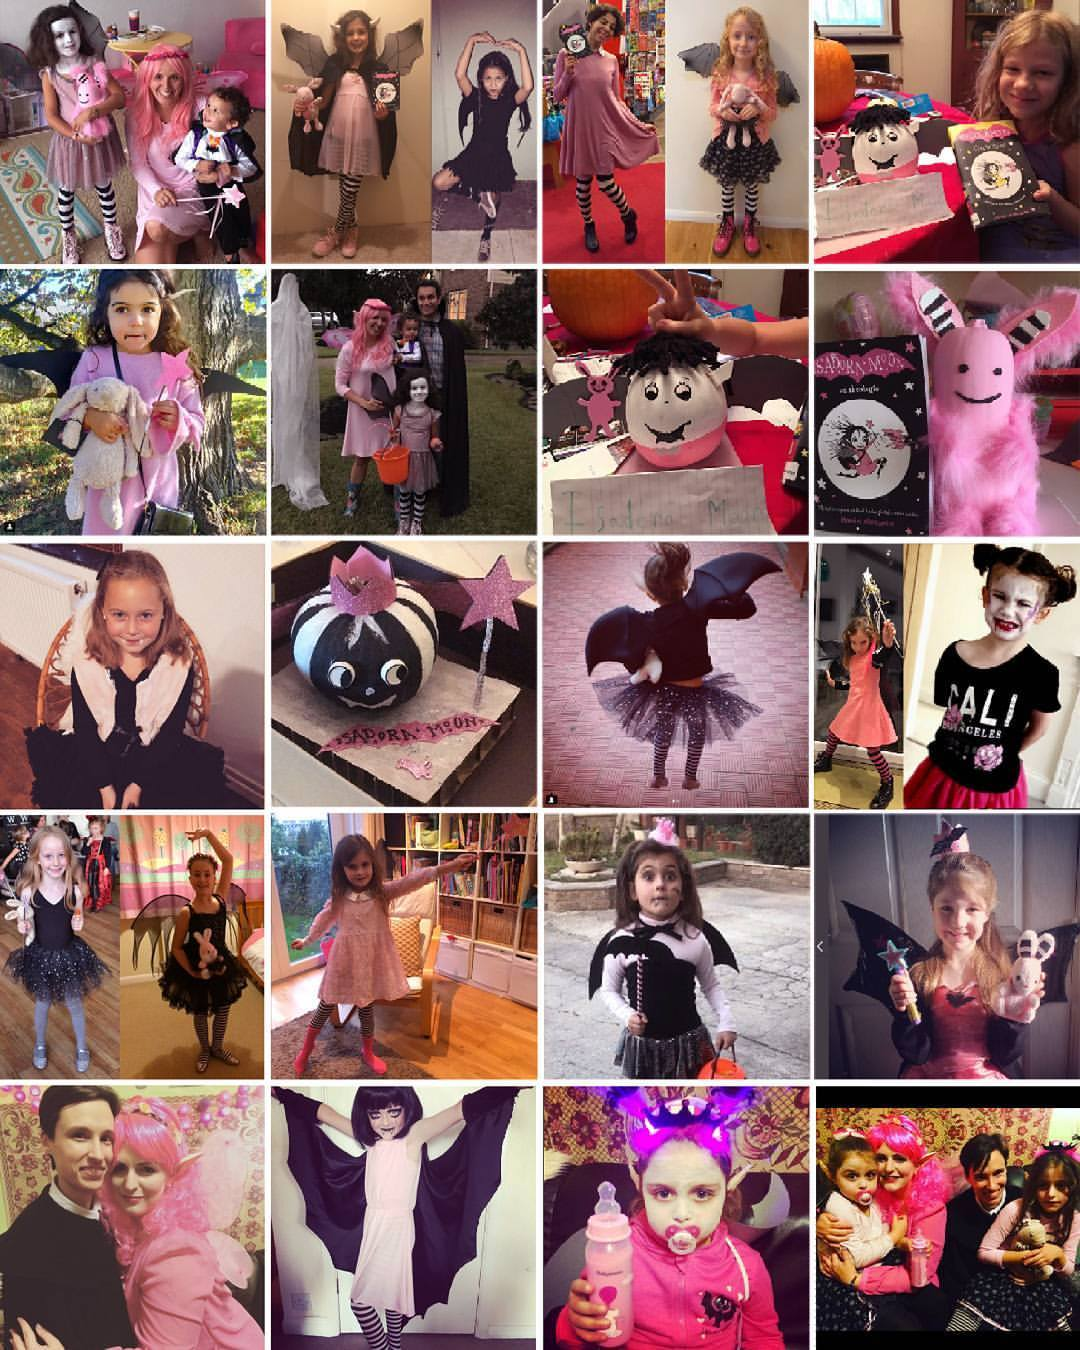 Isadora Moon Halloween costumes and decorations